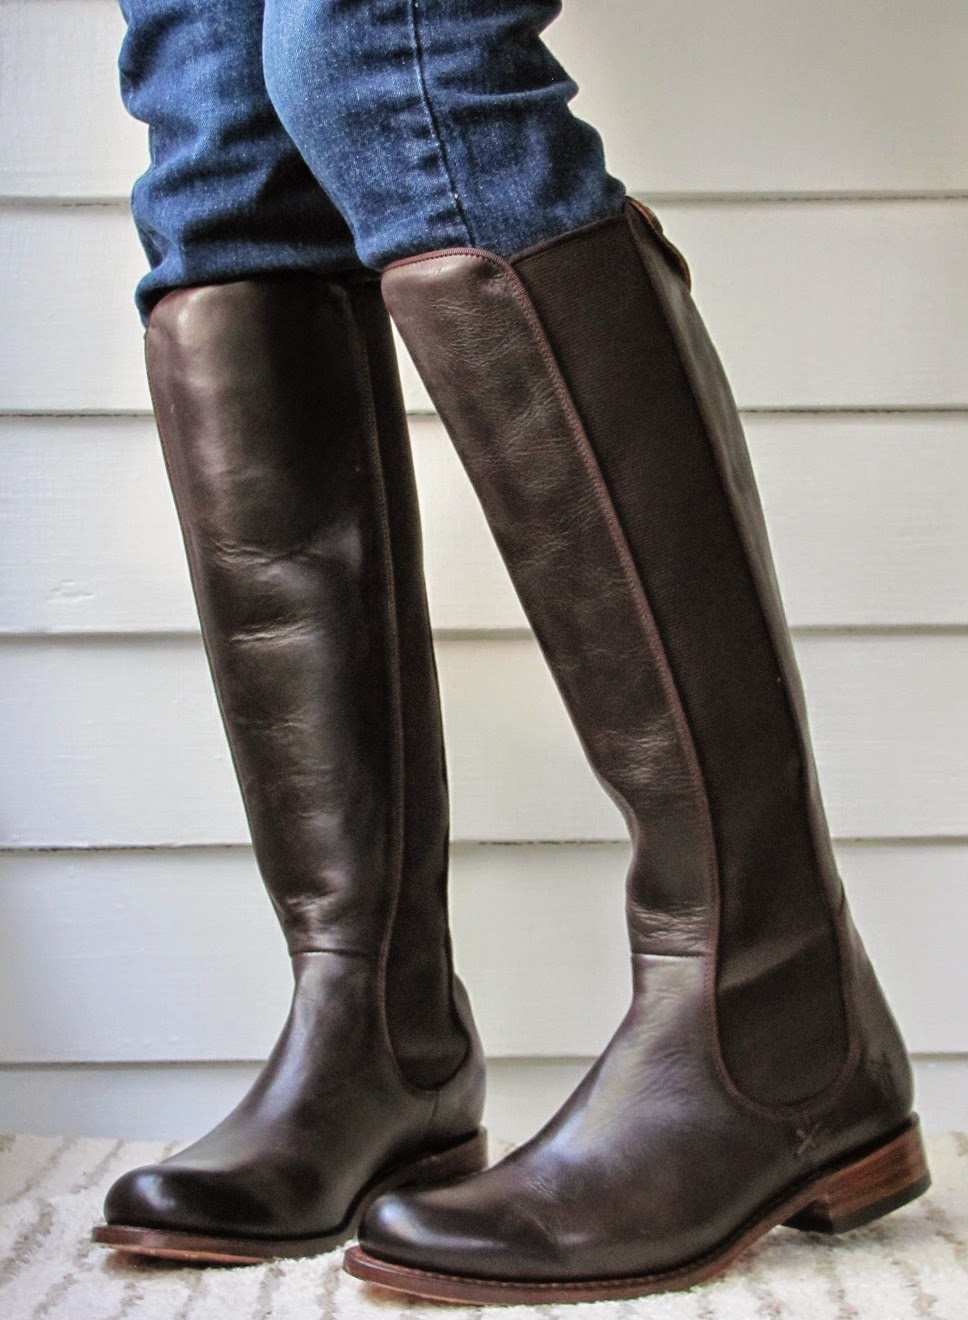 Howdy Slim Riding Boots For Thin Calves Frye Riding Chelsea